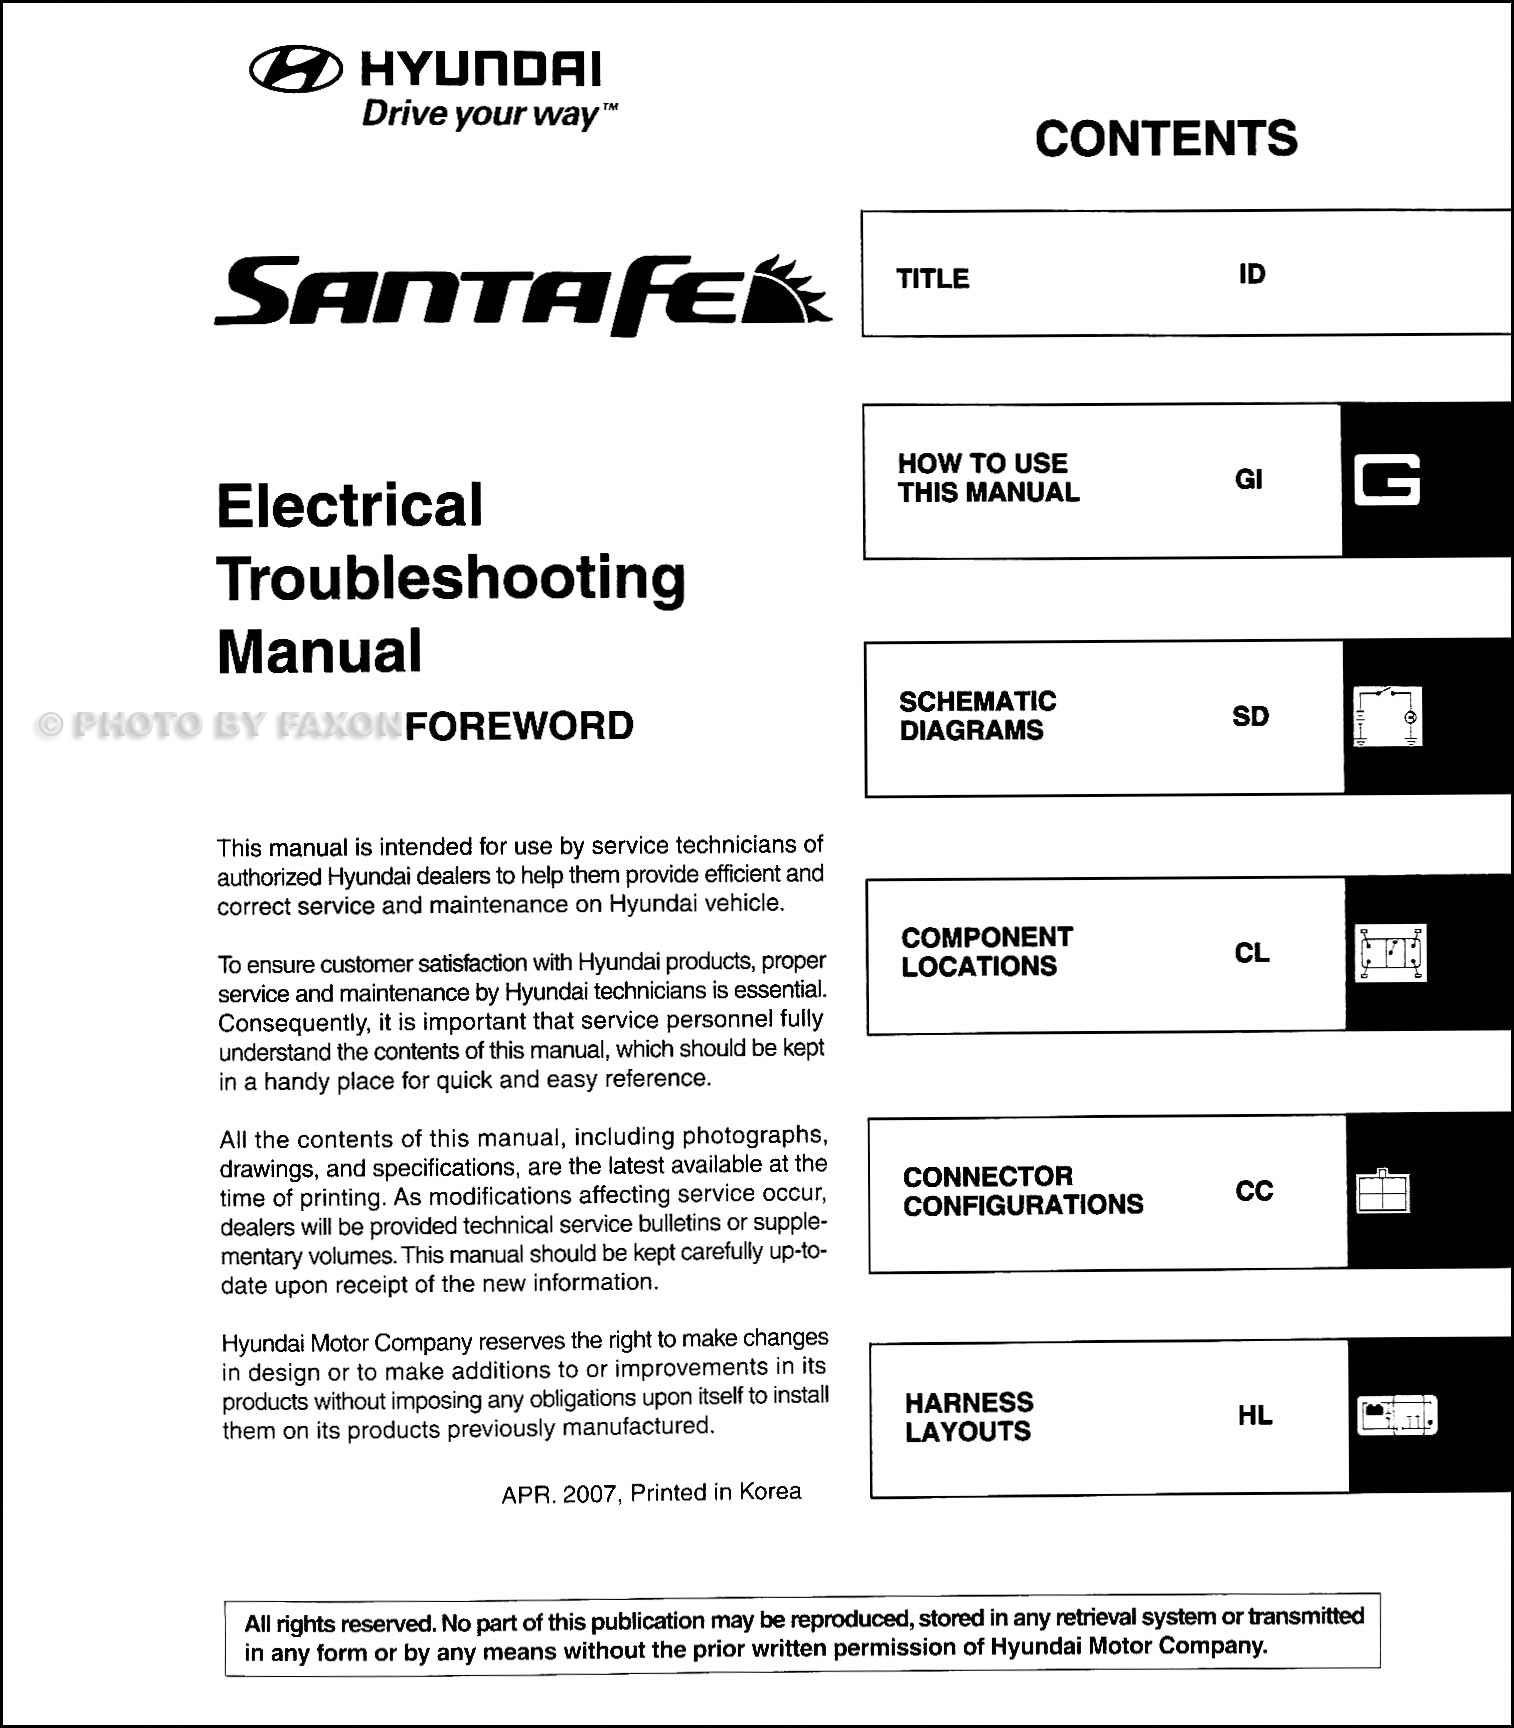 2008 Hyundai Santa Fe Electrical Troubleshooting Manual Factory Reprint ·  Table of Contents